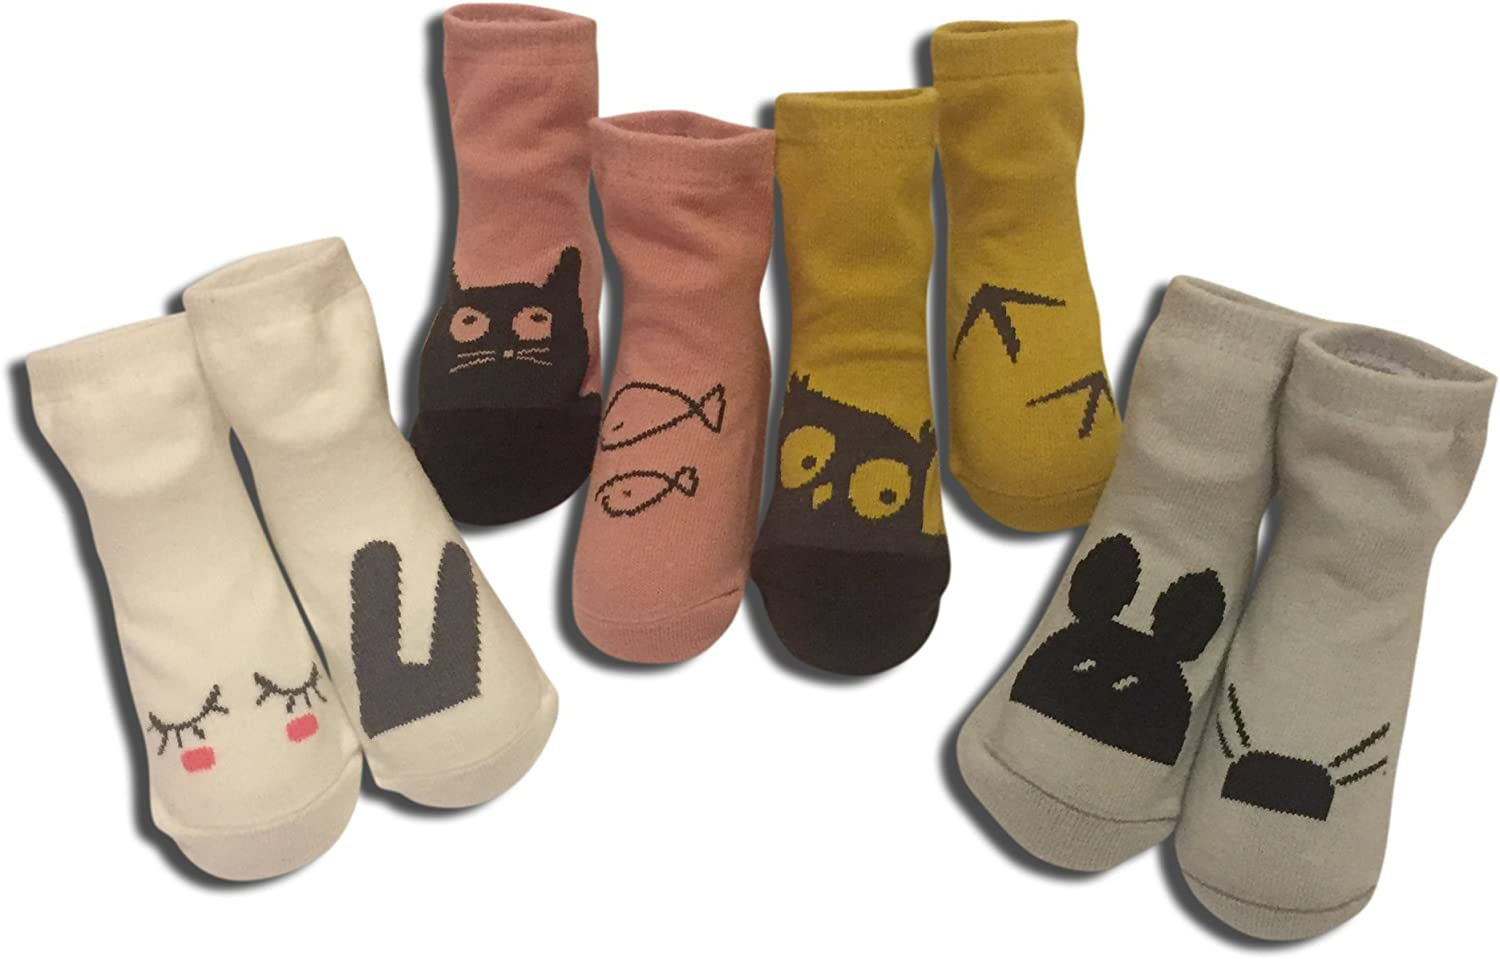 Premium 4 pack Baby No Slip Animal Socks, ages 6-24 months, by W+B